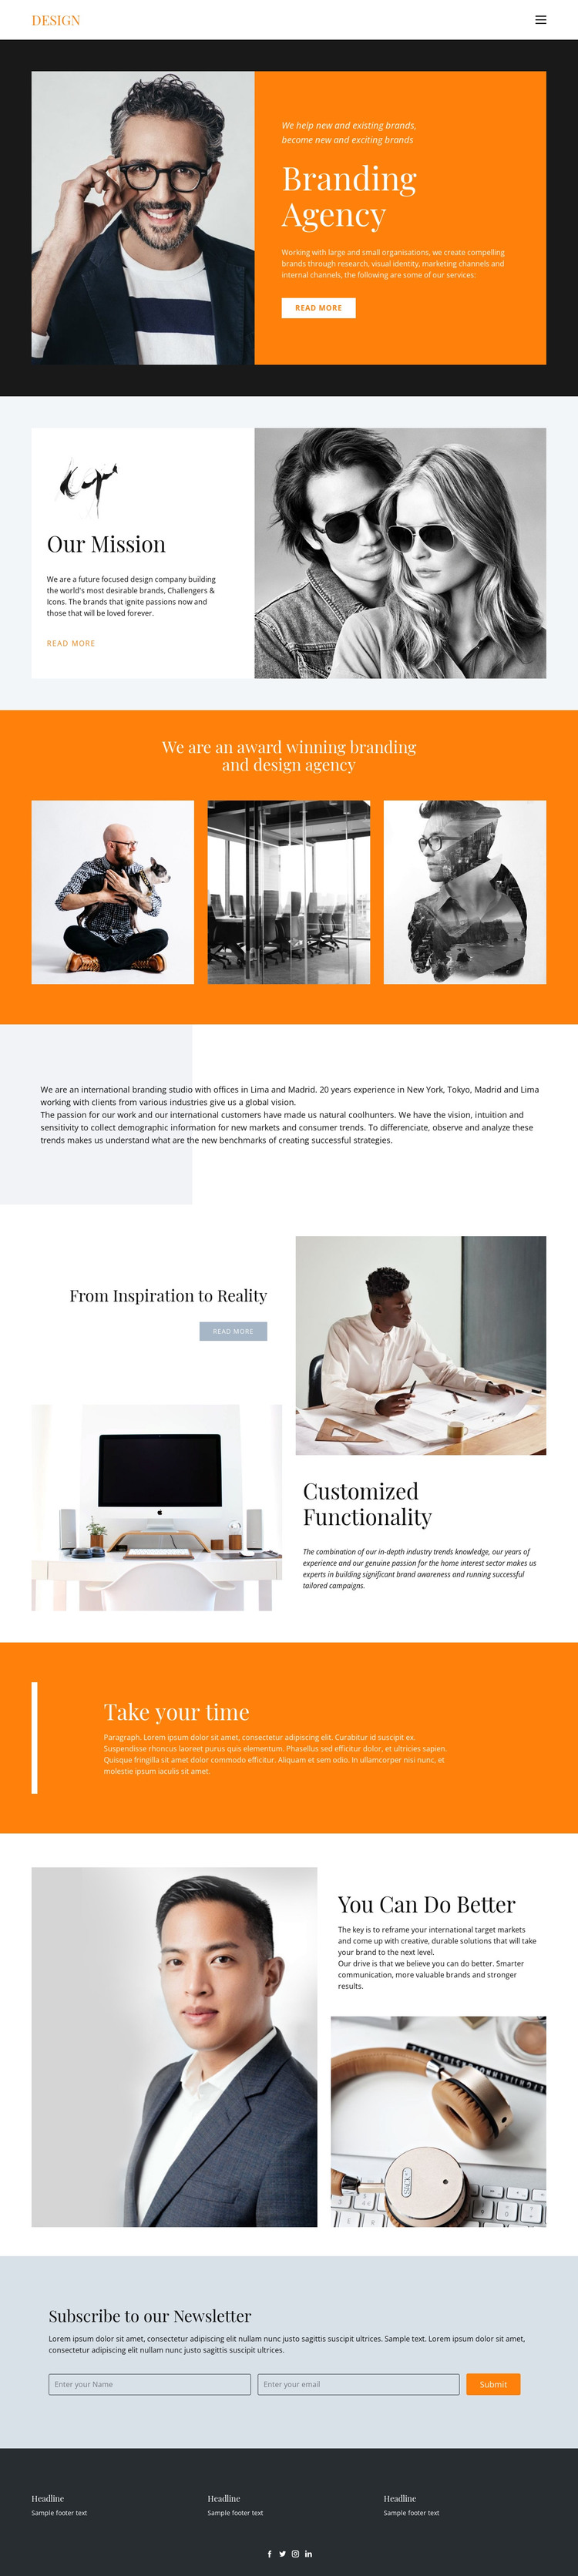 Desired results in business HTML Template